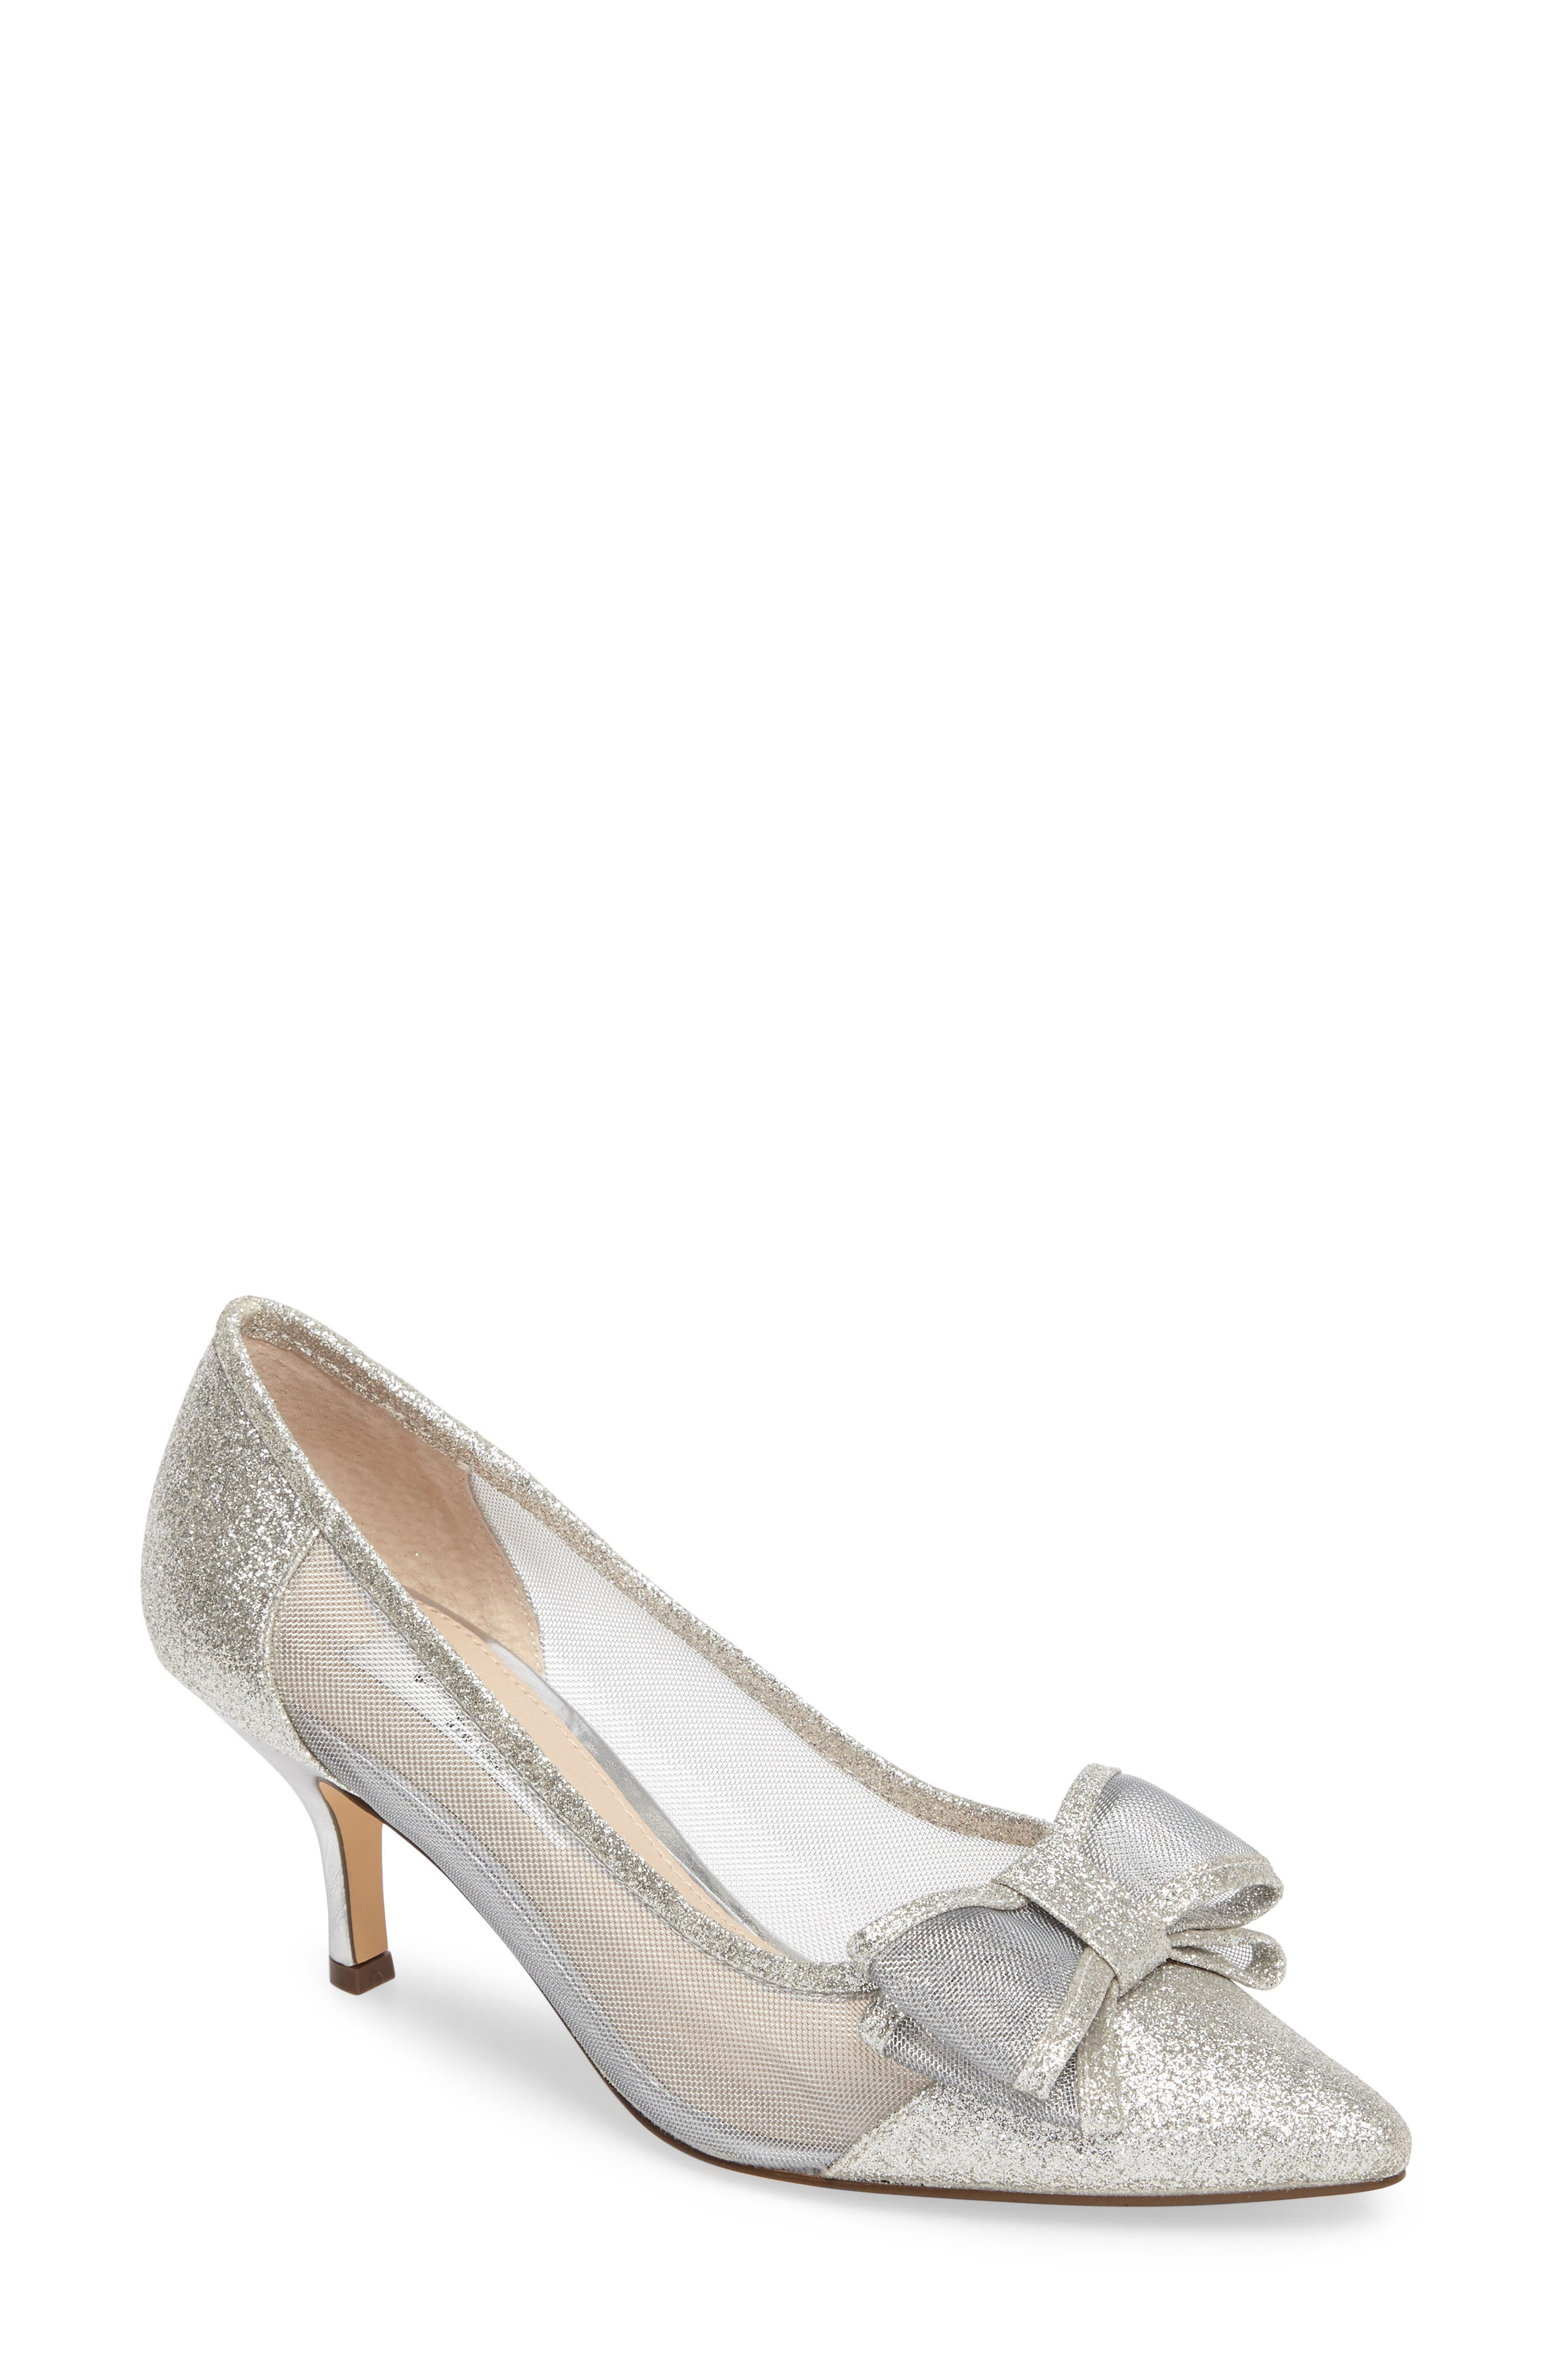 NINA Bianca Pointy Toe Pump, Main, color, SOFT SILVER GLITTER FABRIC